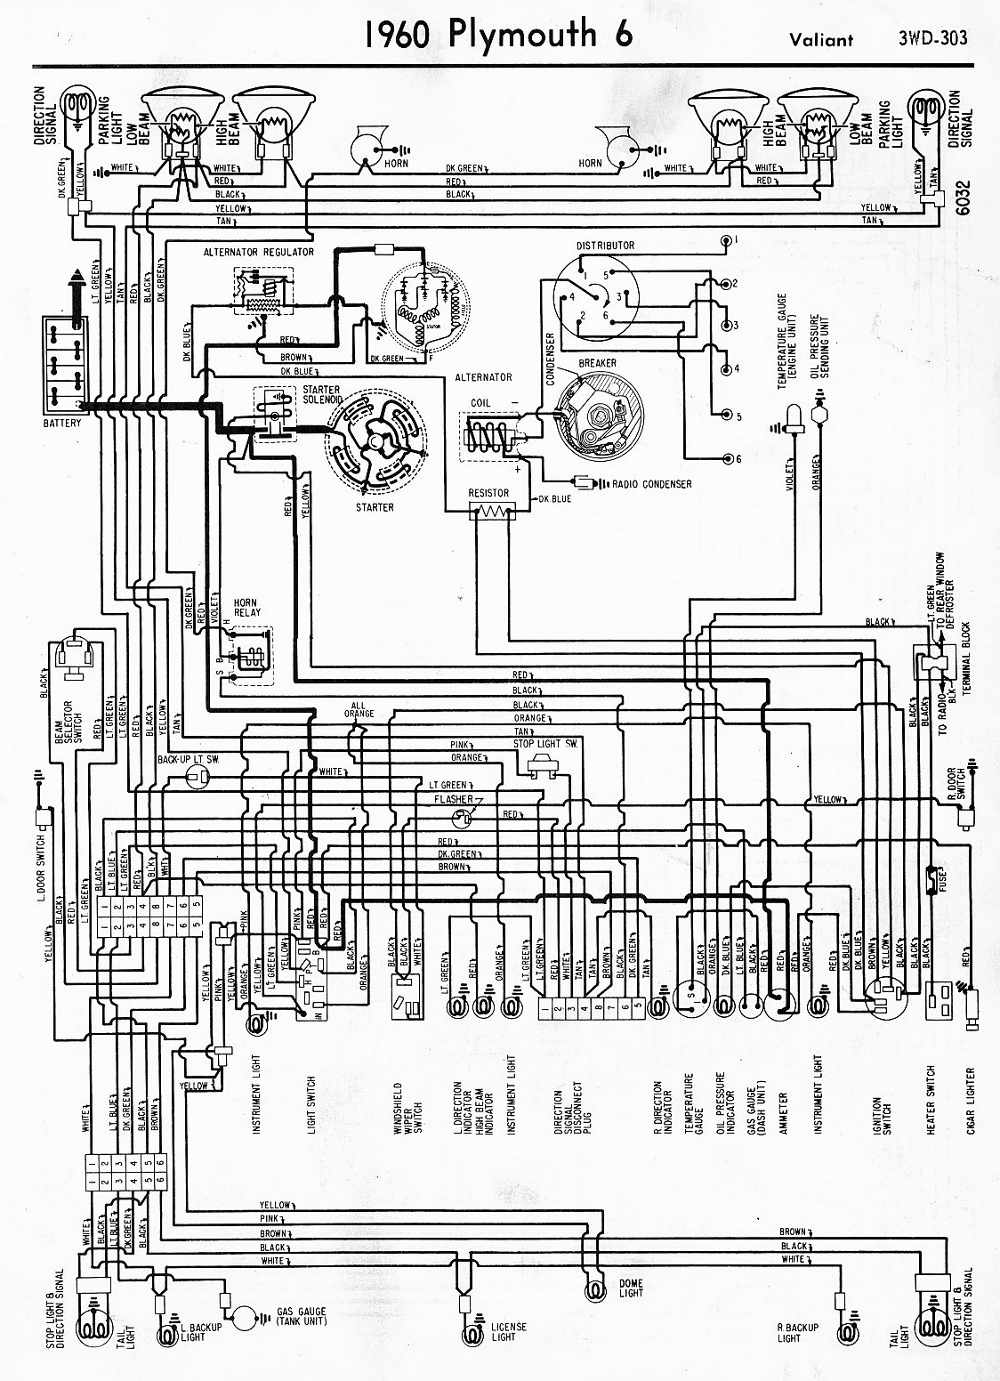 74 duster fuse box wiring diagramplymouth valiant fuse box wiring diagram